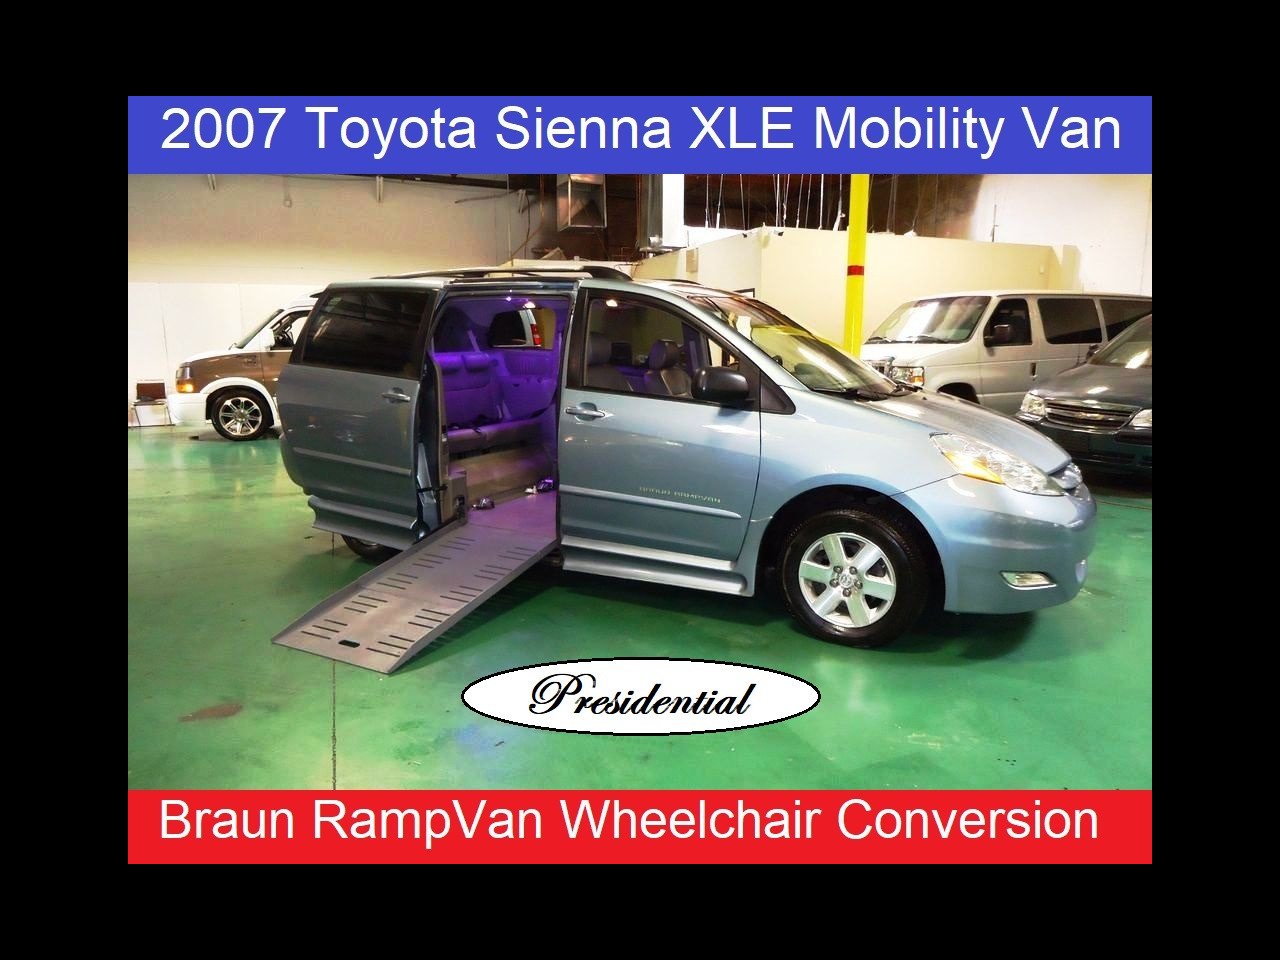 2007 Toyota Sienna Presidential XLE Mobility Handicap Wheelchair Conv